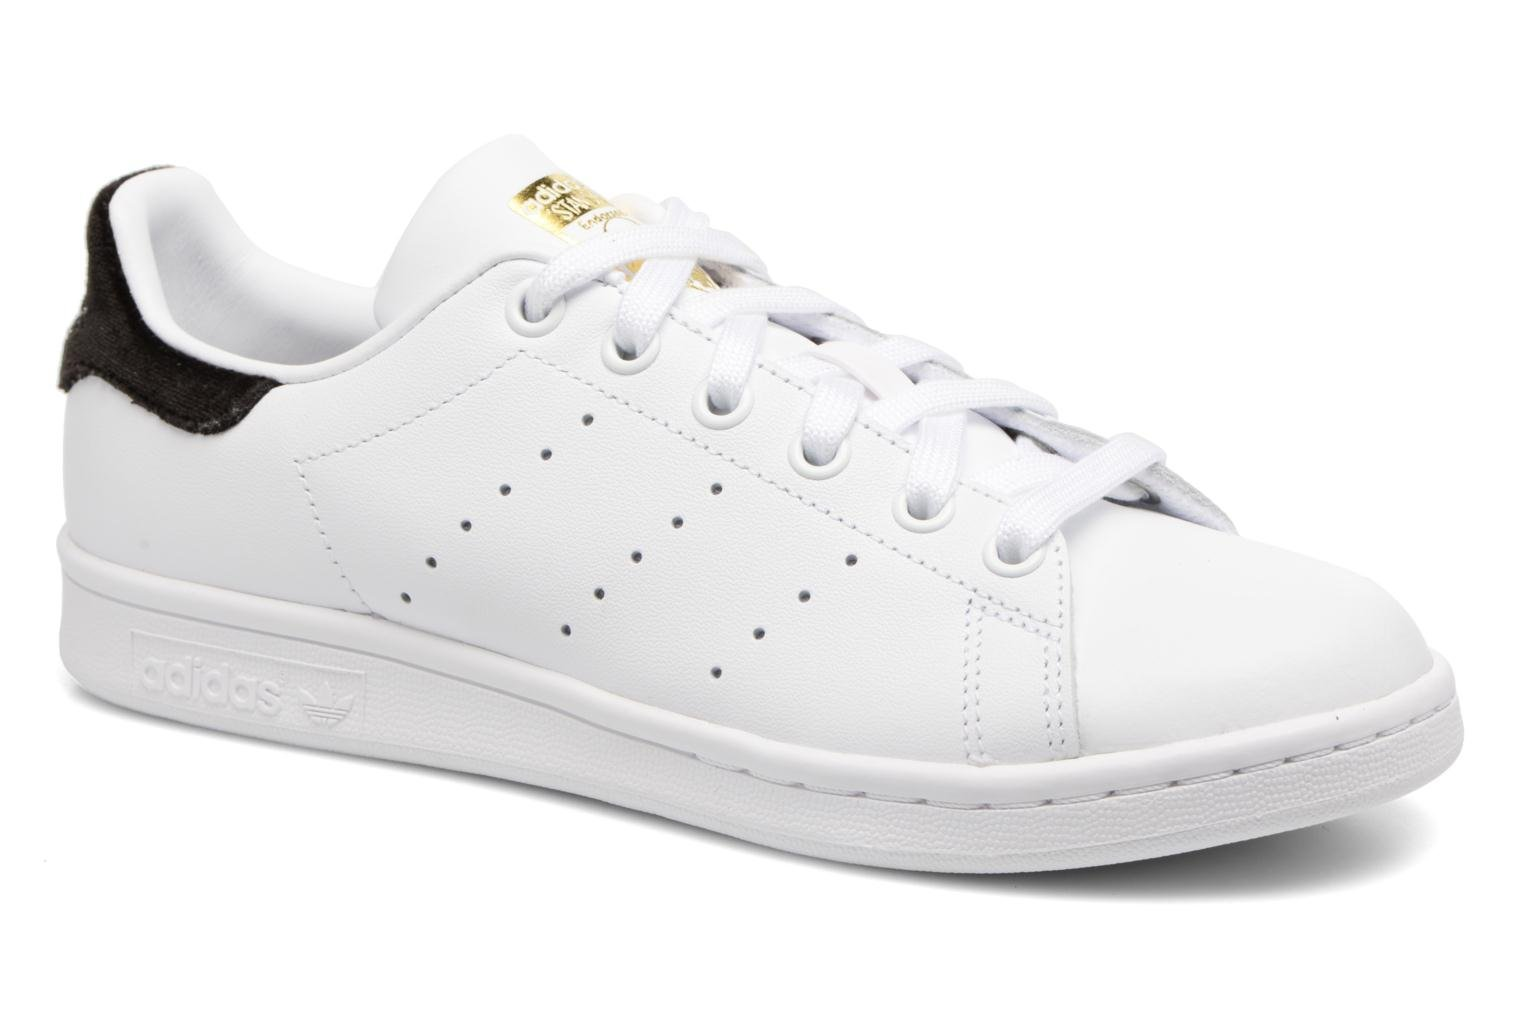 STAN SMITH J Ftwbla/Ftwbla/Noiess